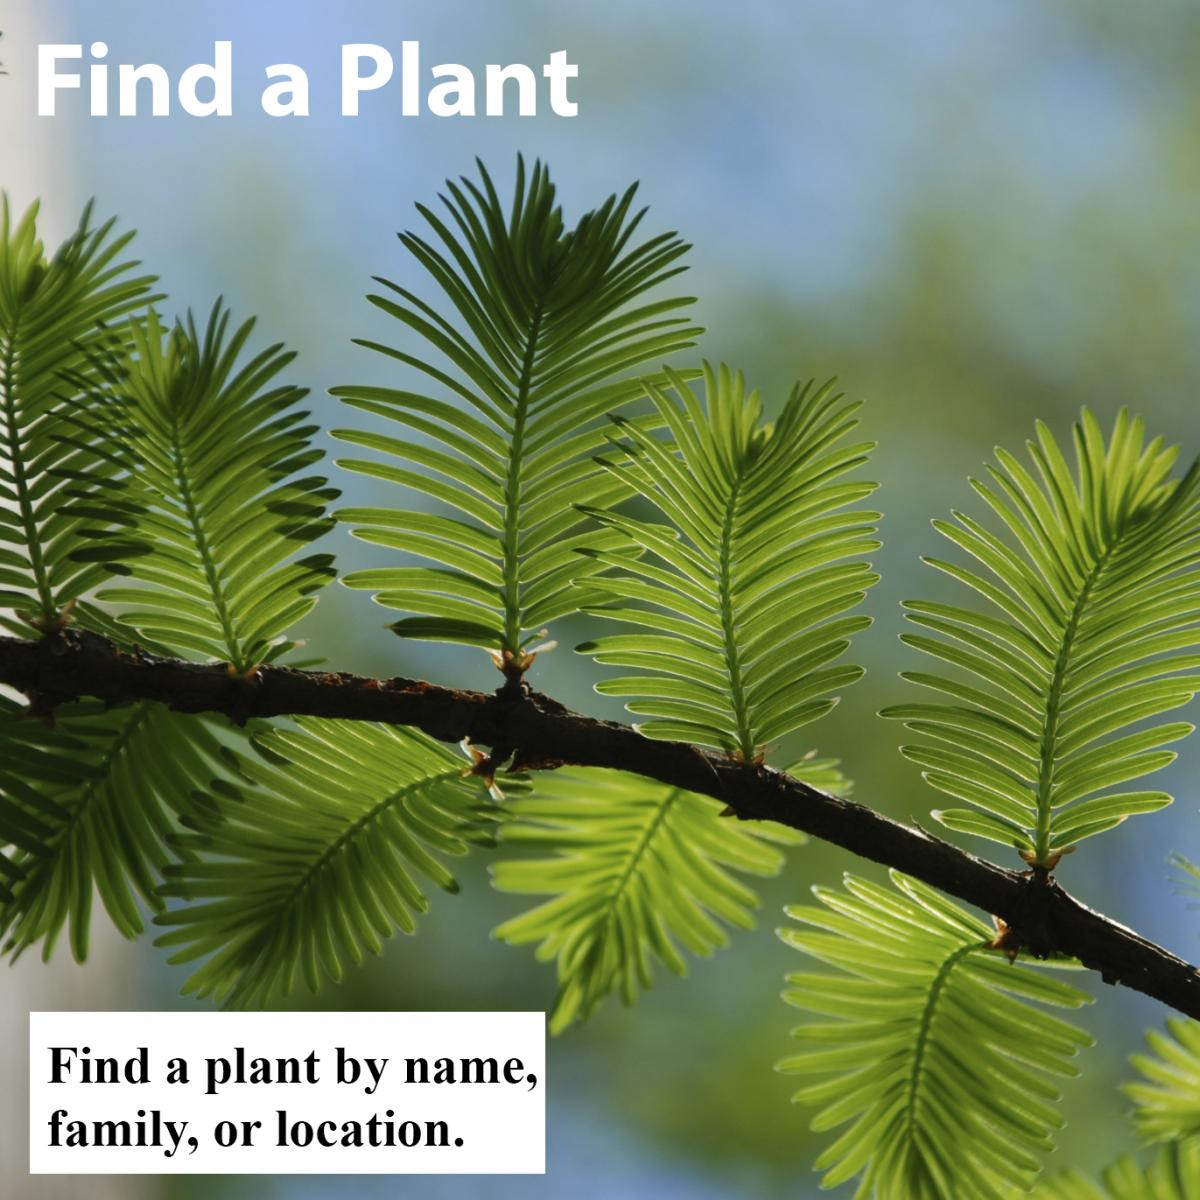 Find a plant by name, family, or location